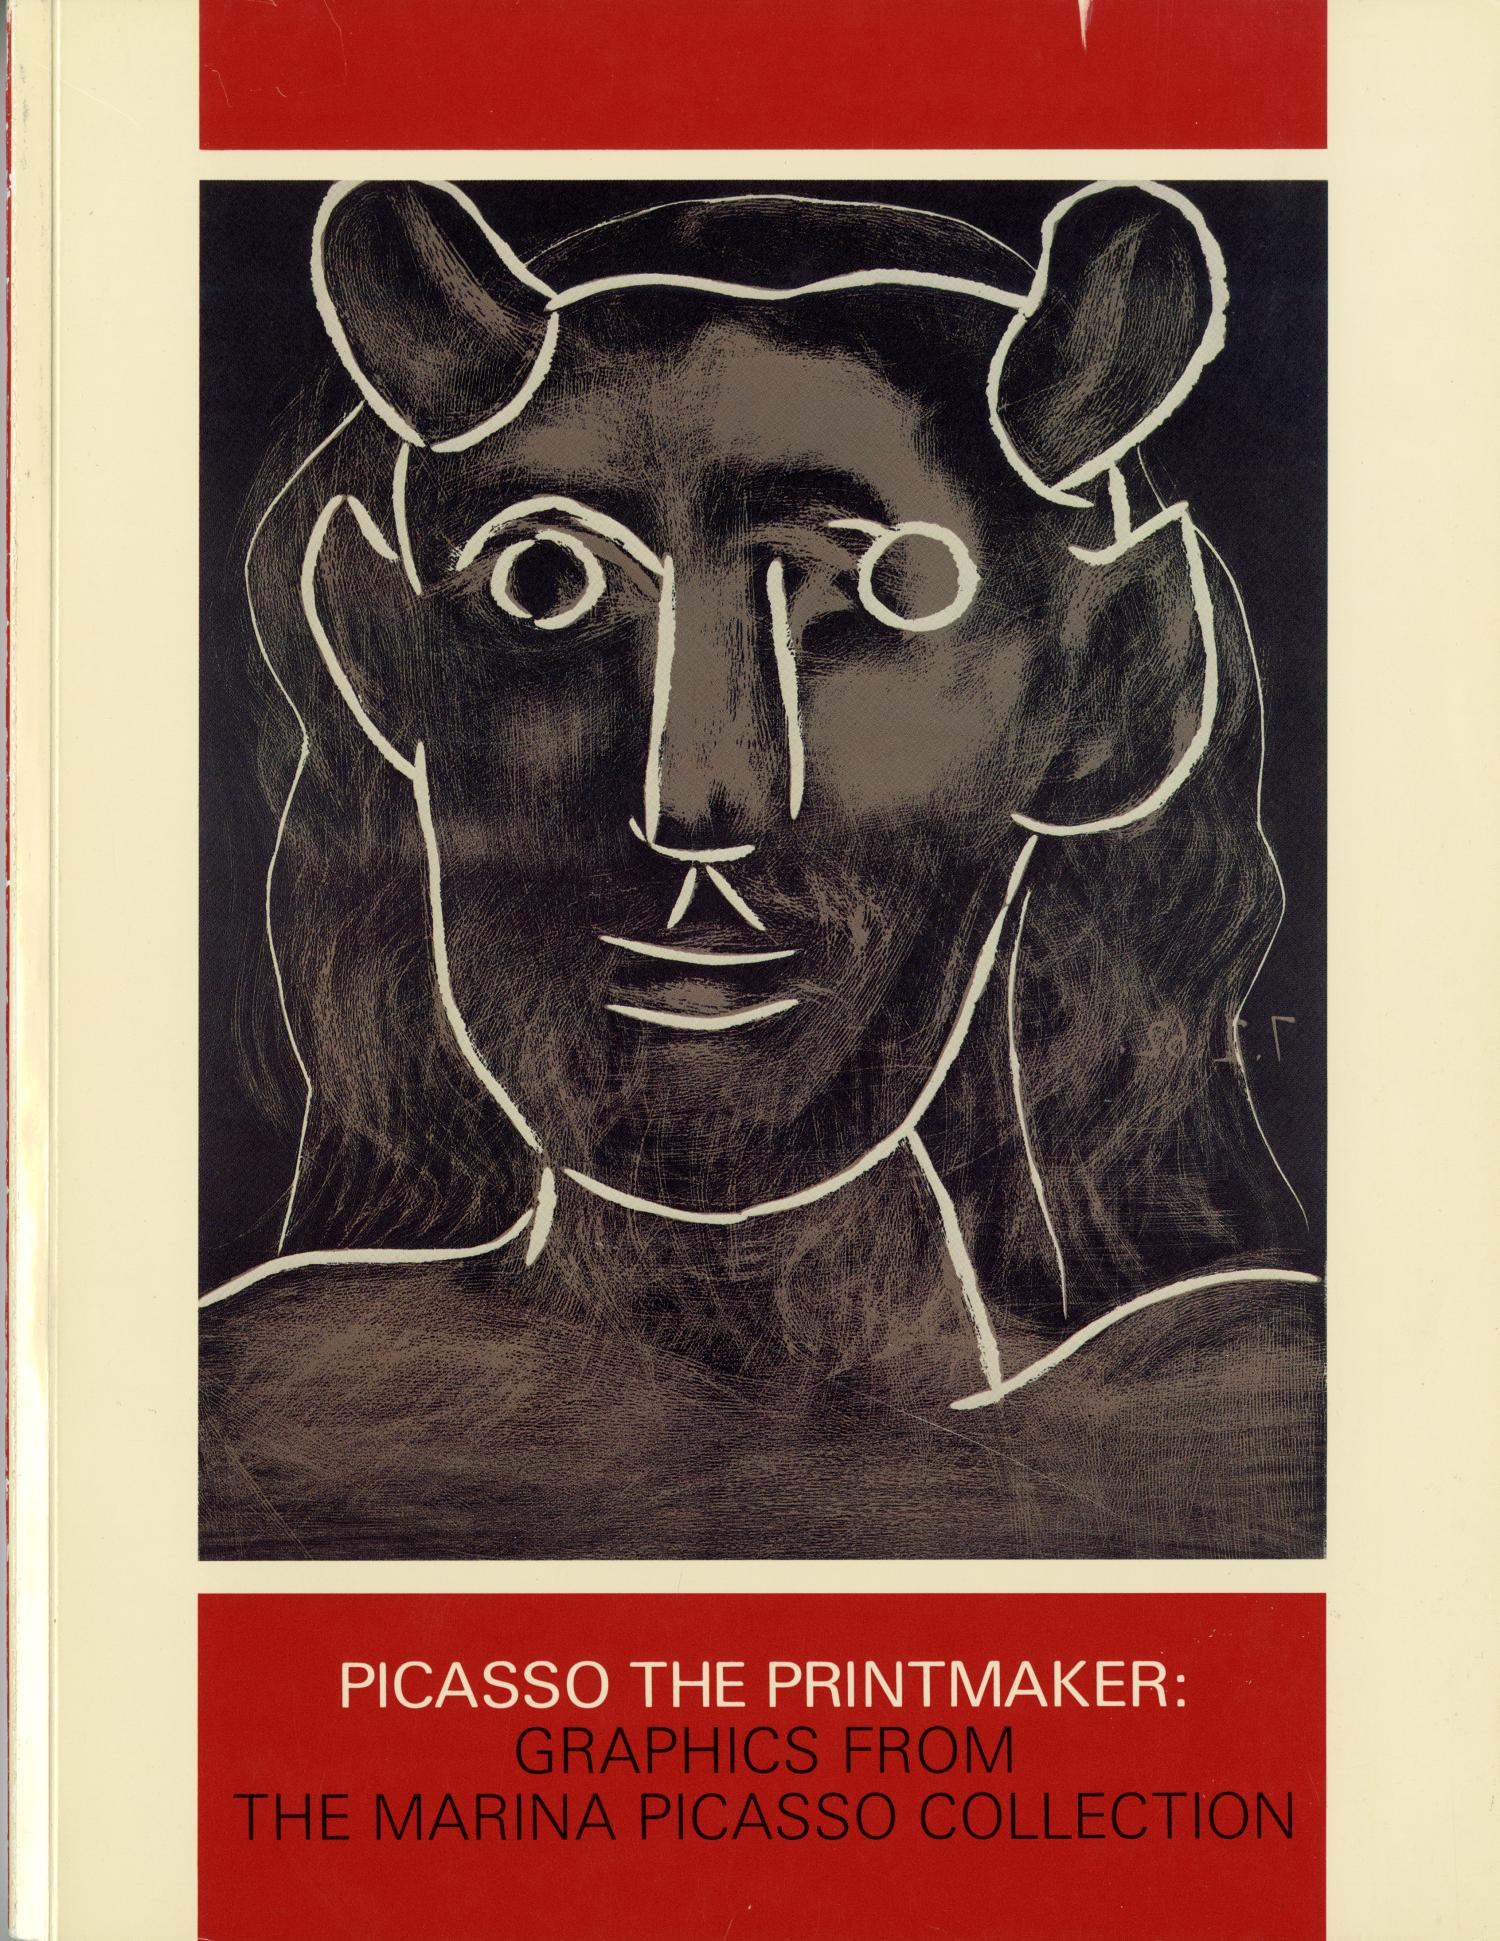 pablo picasso drawings from the marina picasso collection